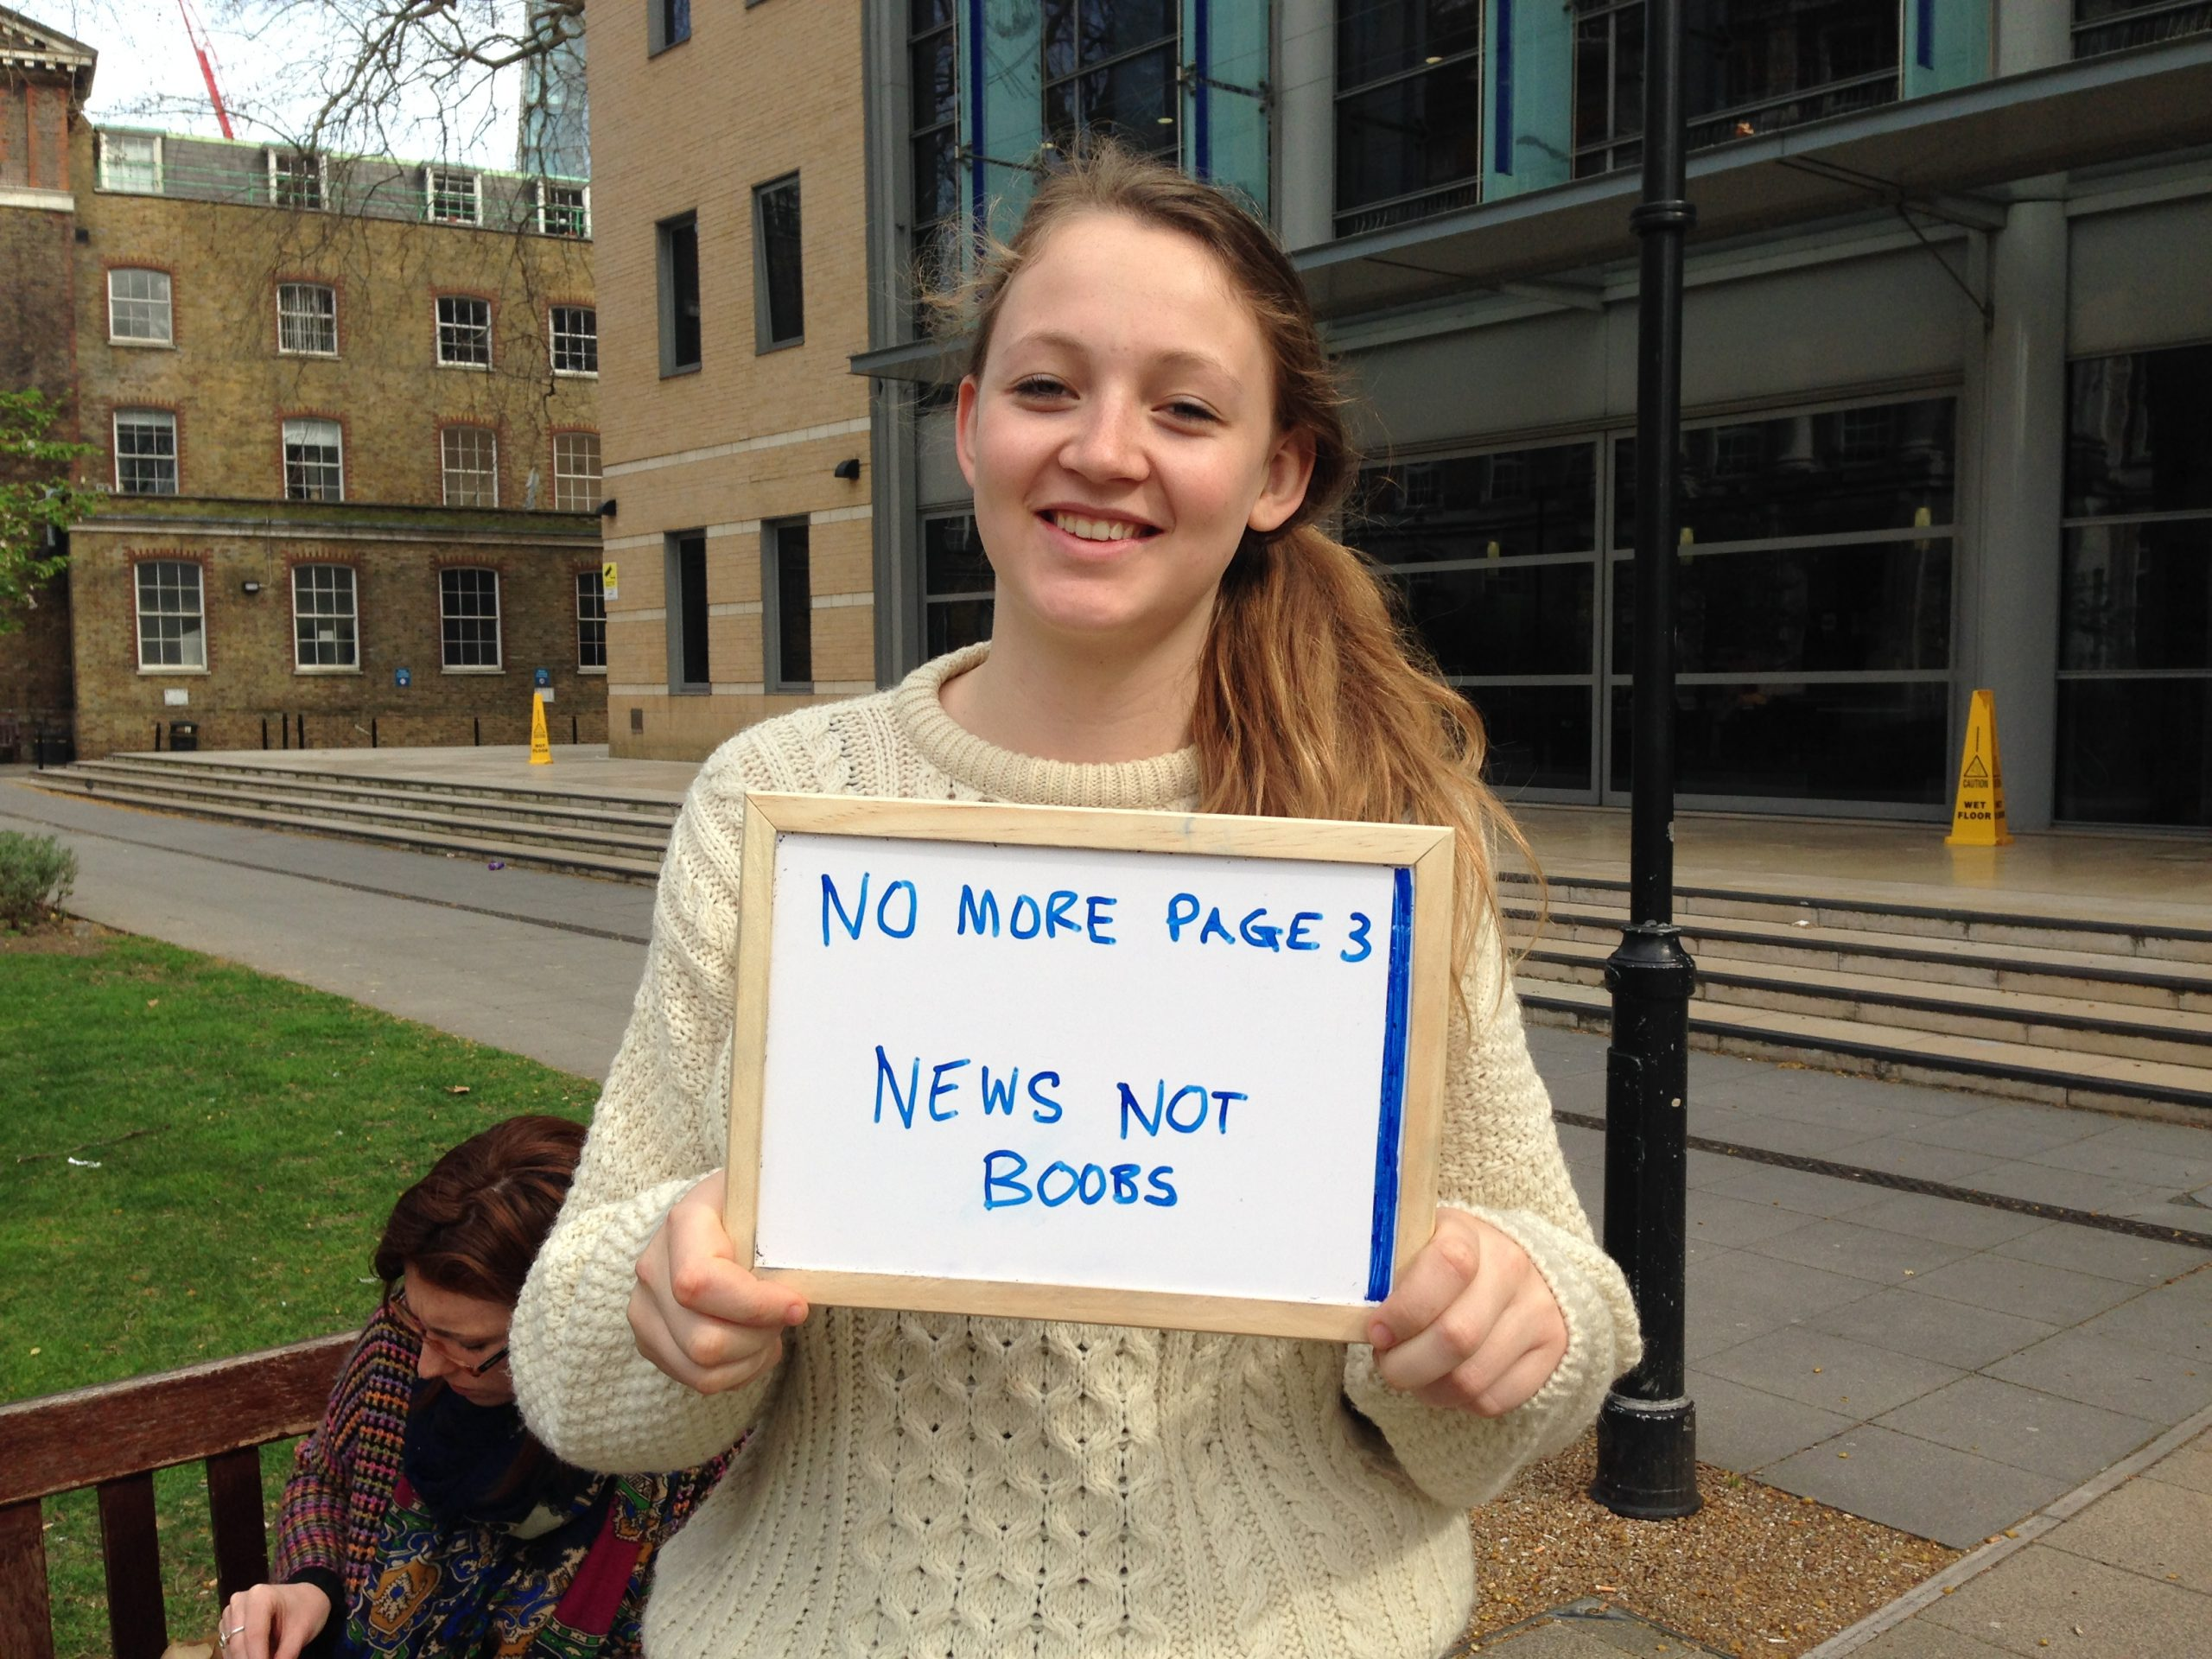 Twelve Things The No More Page 3 Campaign Is Not For The Sun Girls Page 3